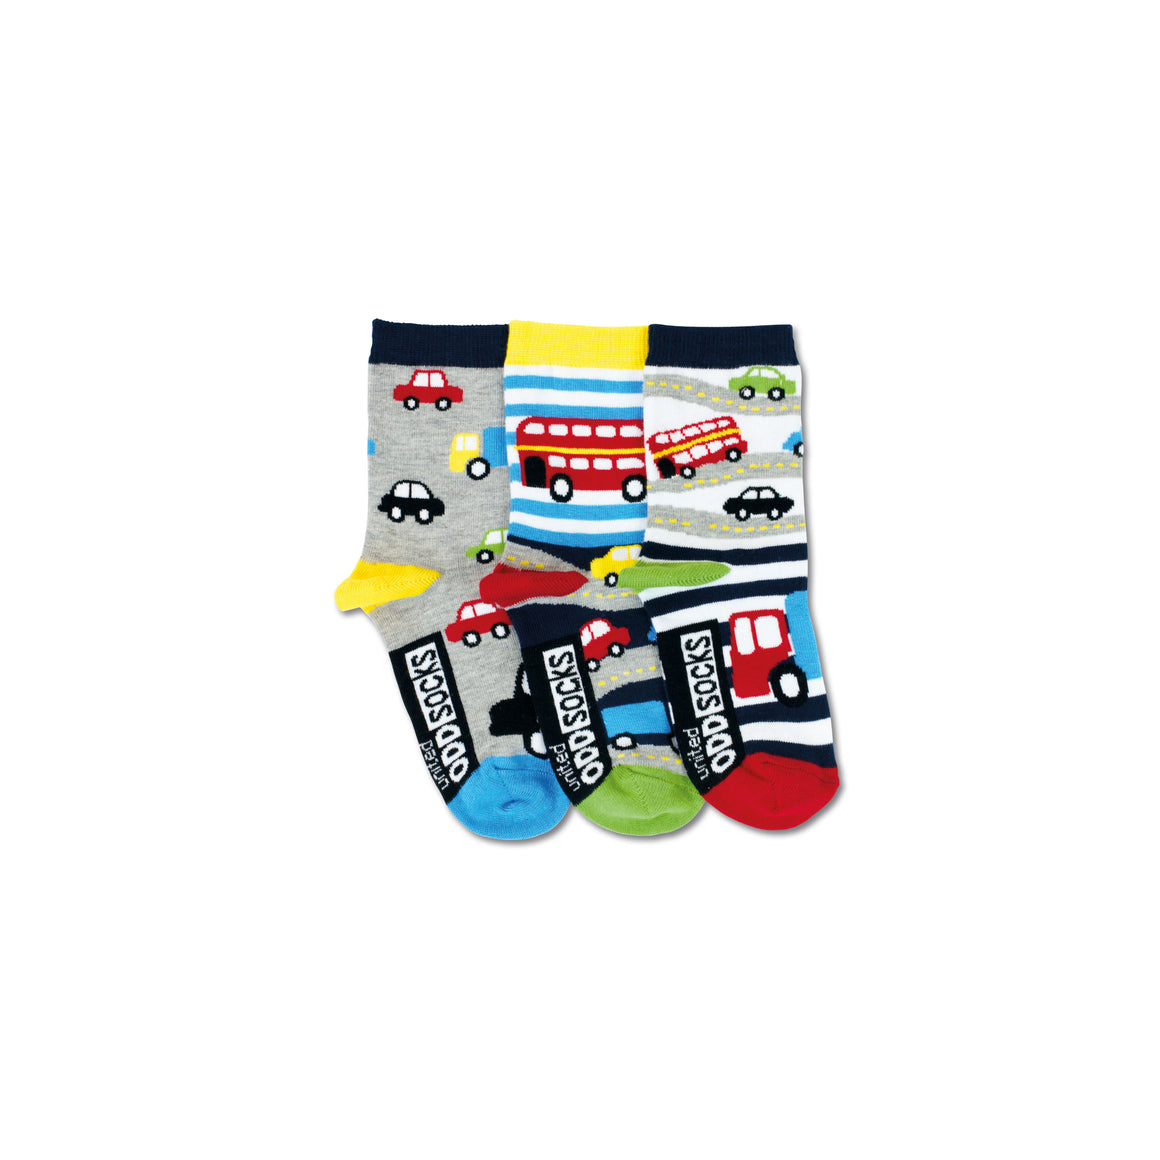 United Odd Socks Cars Toddlers 3 Pack - The Love Trees